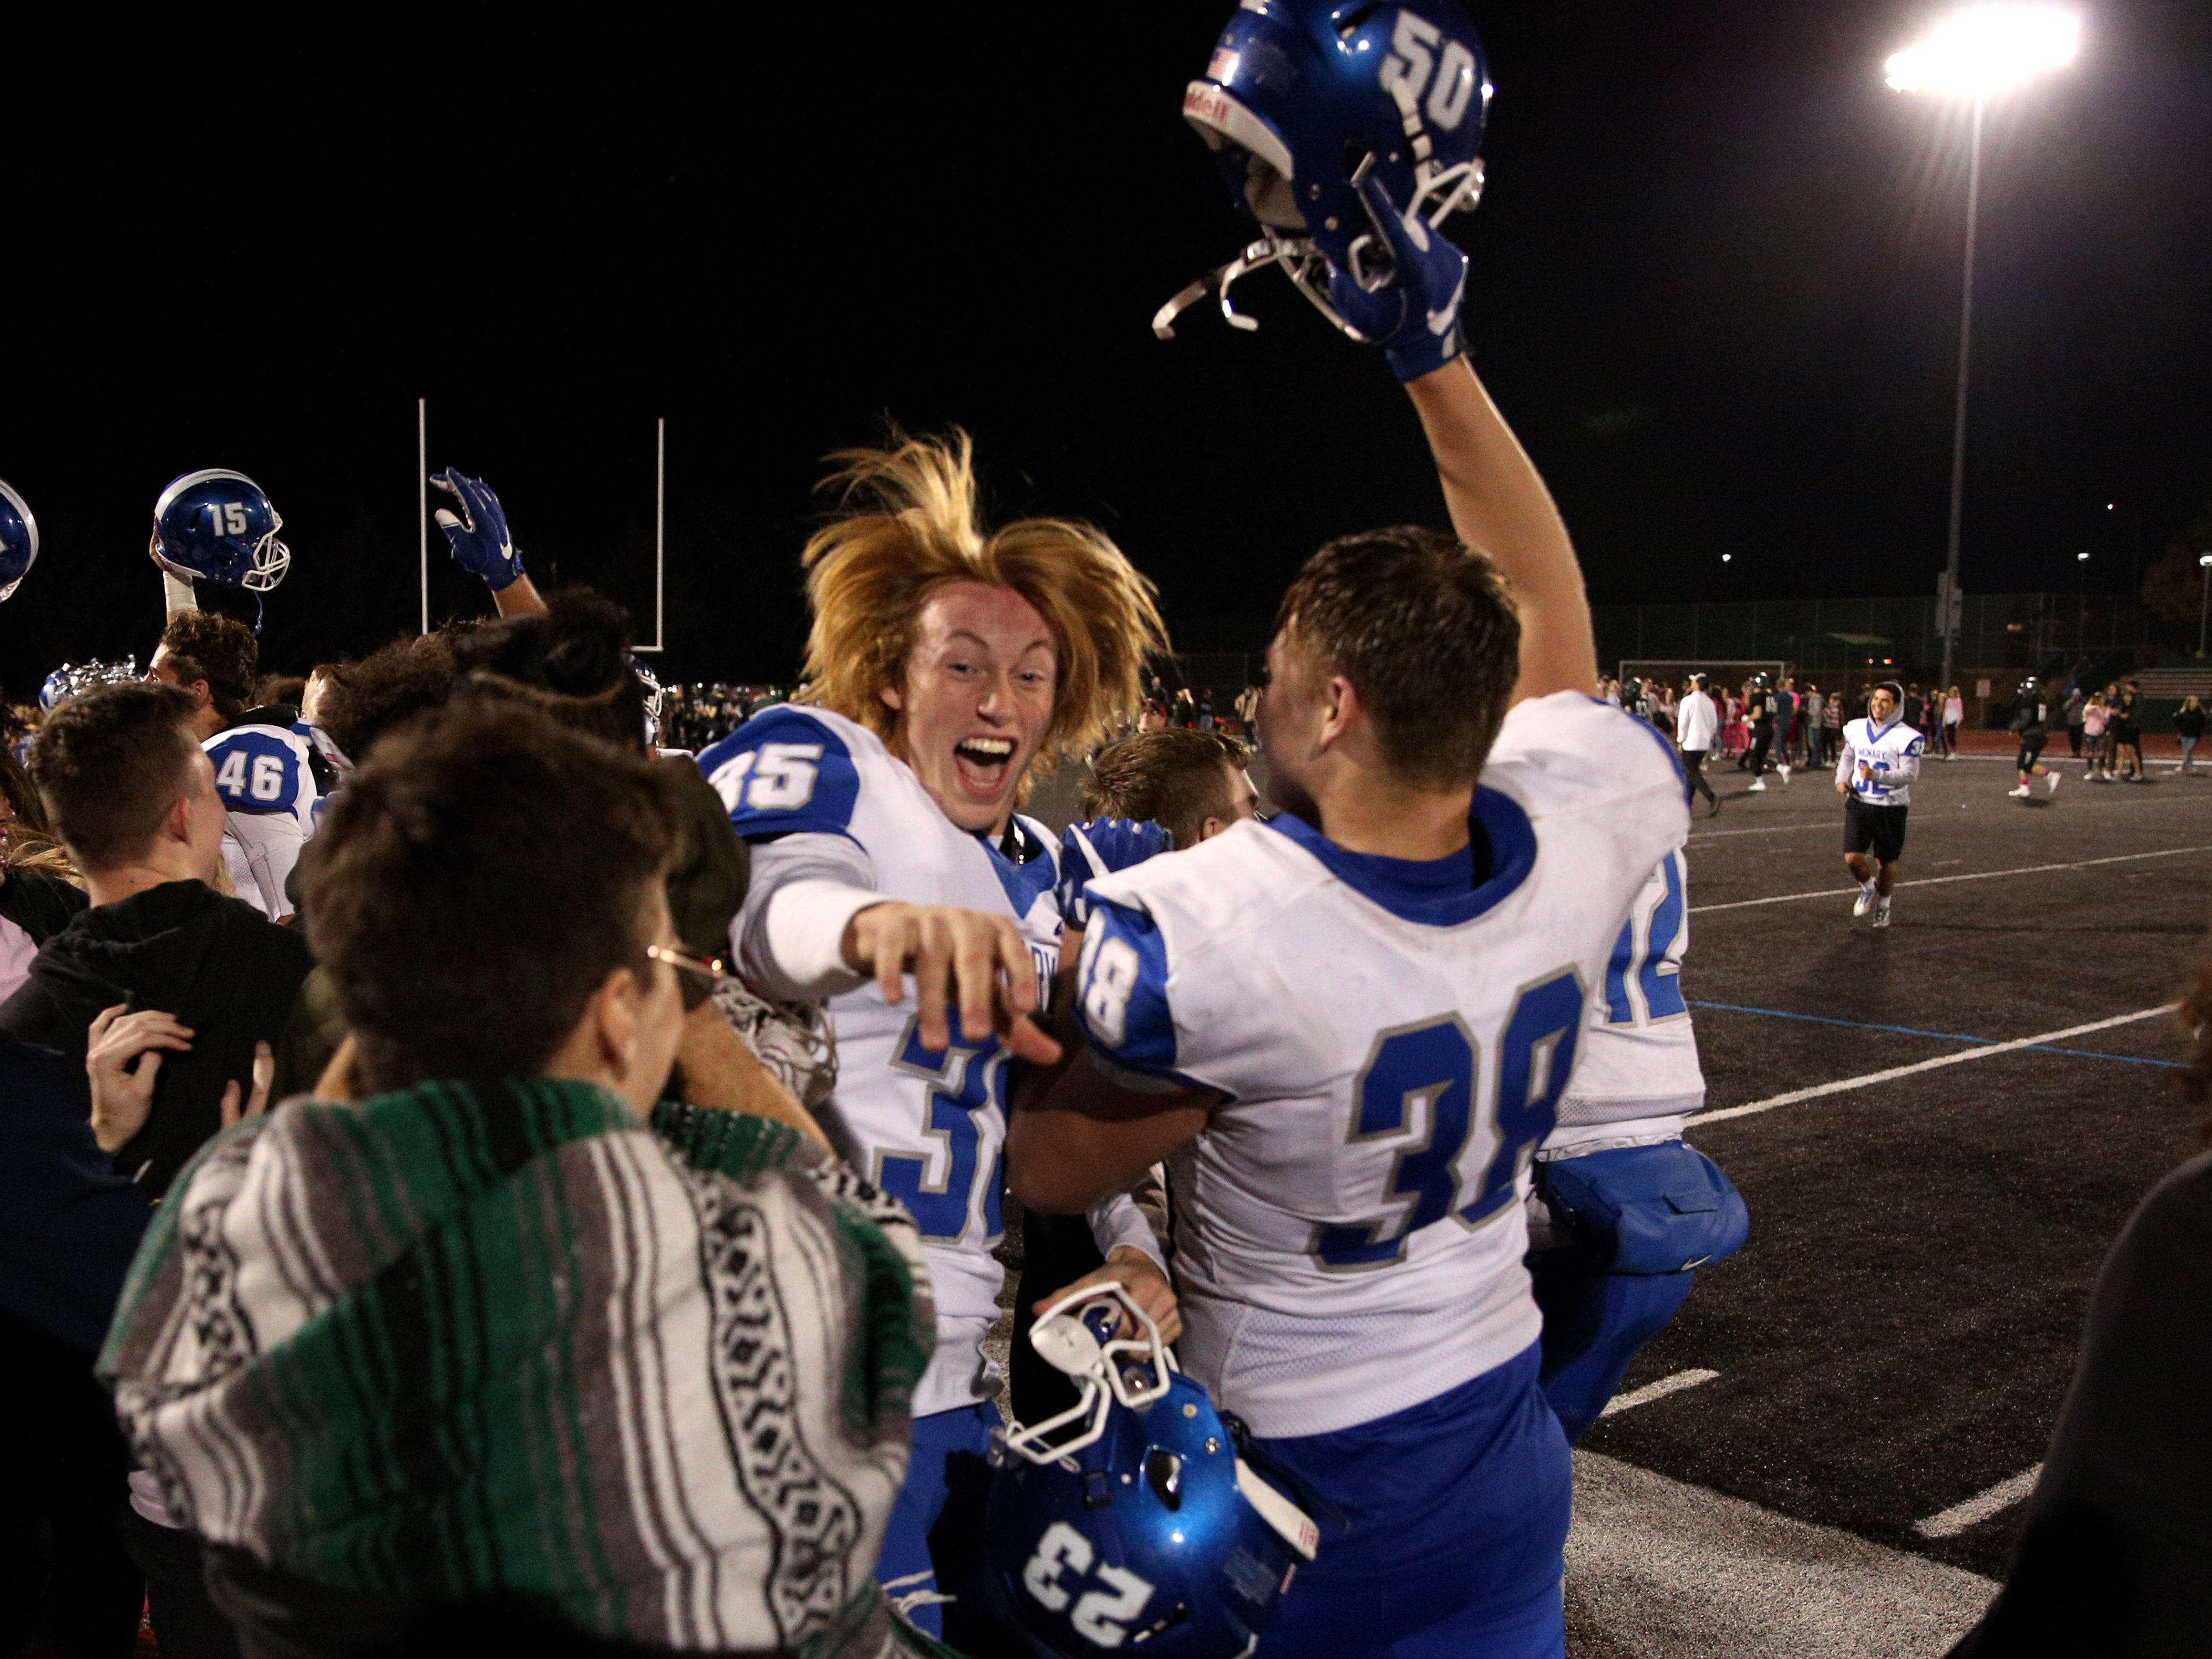 McNary teammates celebrate after his defeatingWest Salem, 35-23, at West Salem High School on Friday, Oct. 19.